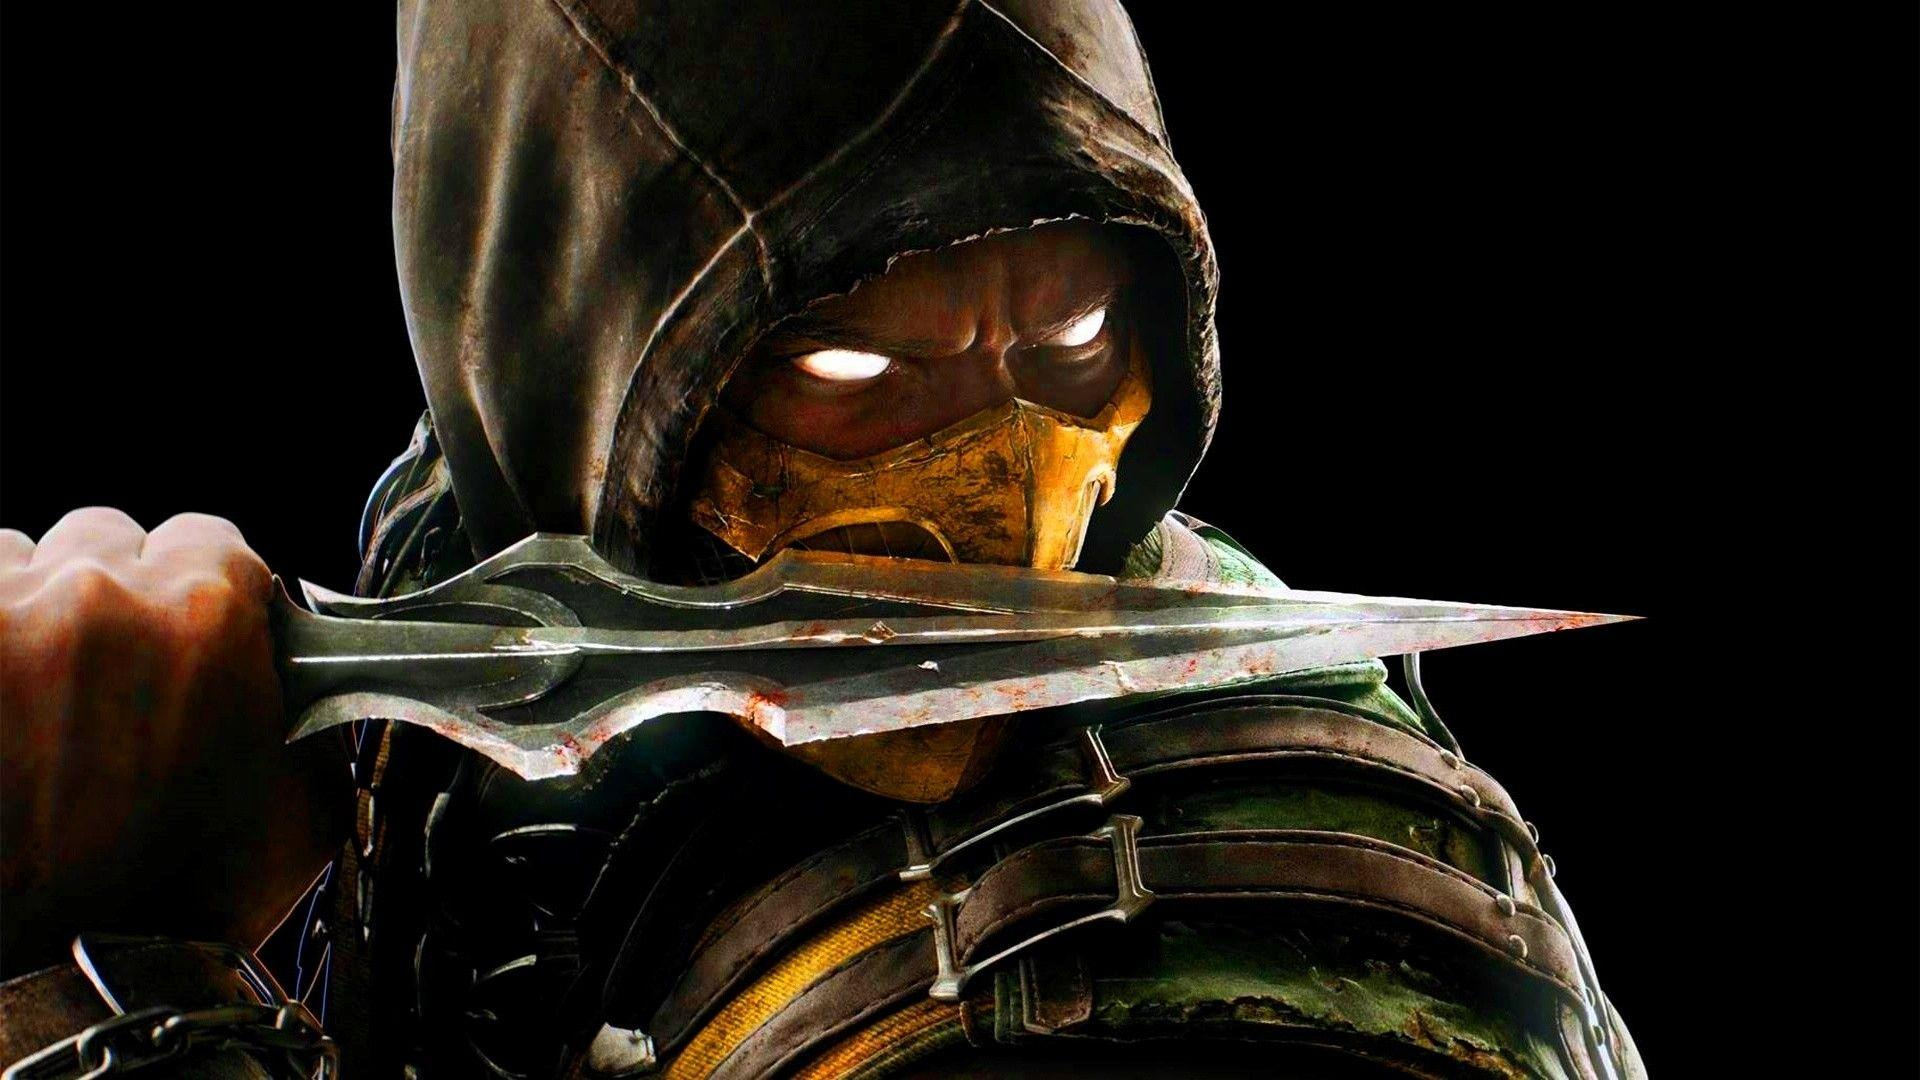 Mortal Kombat Scorpion Wallpapers ·①